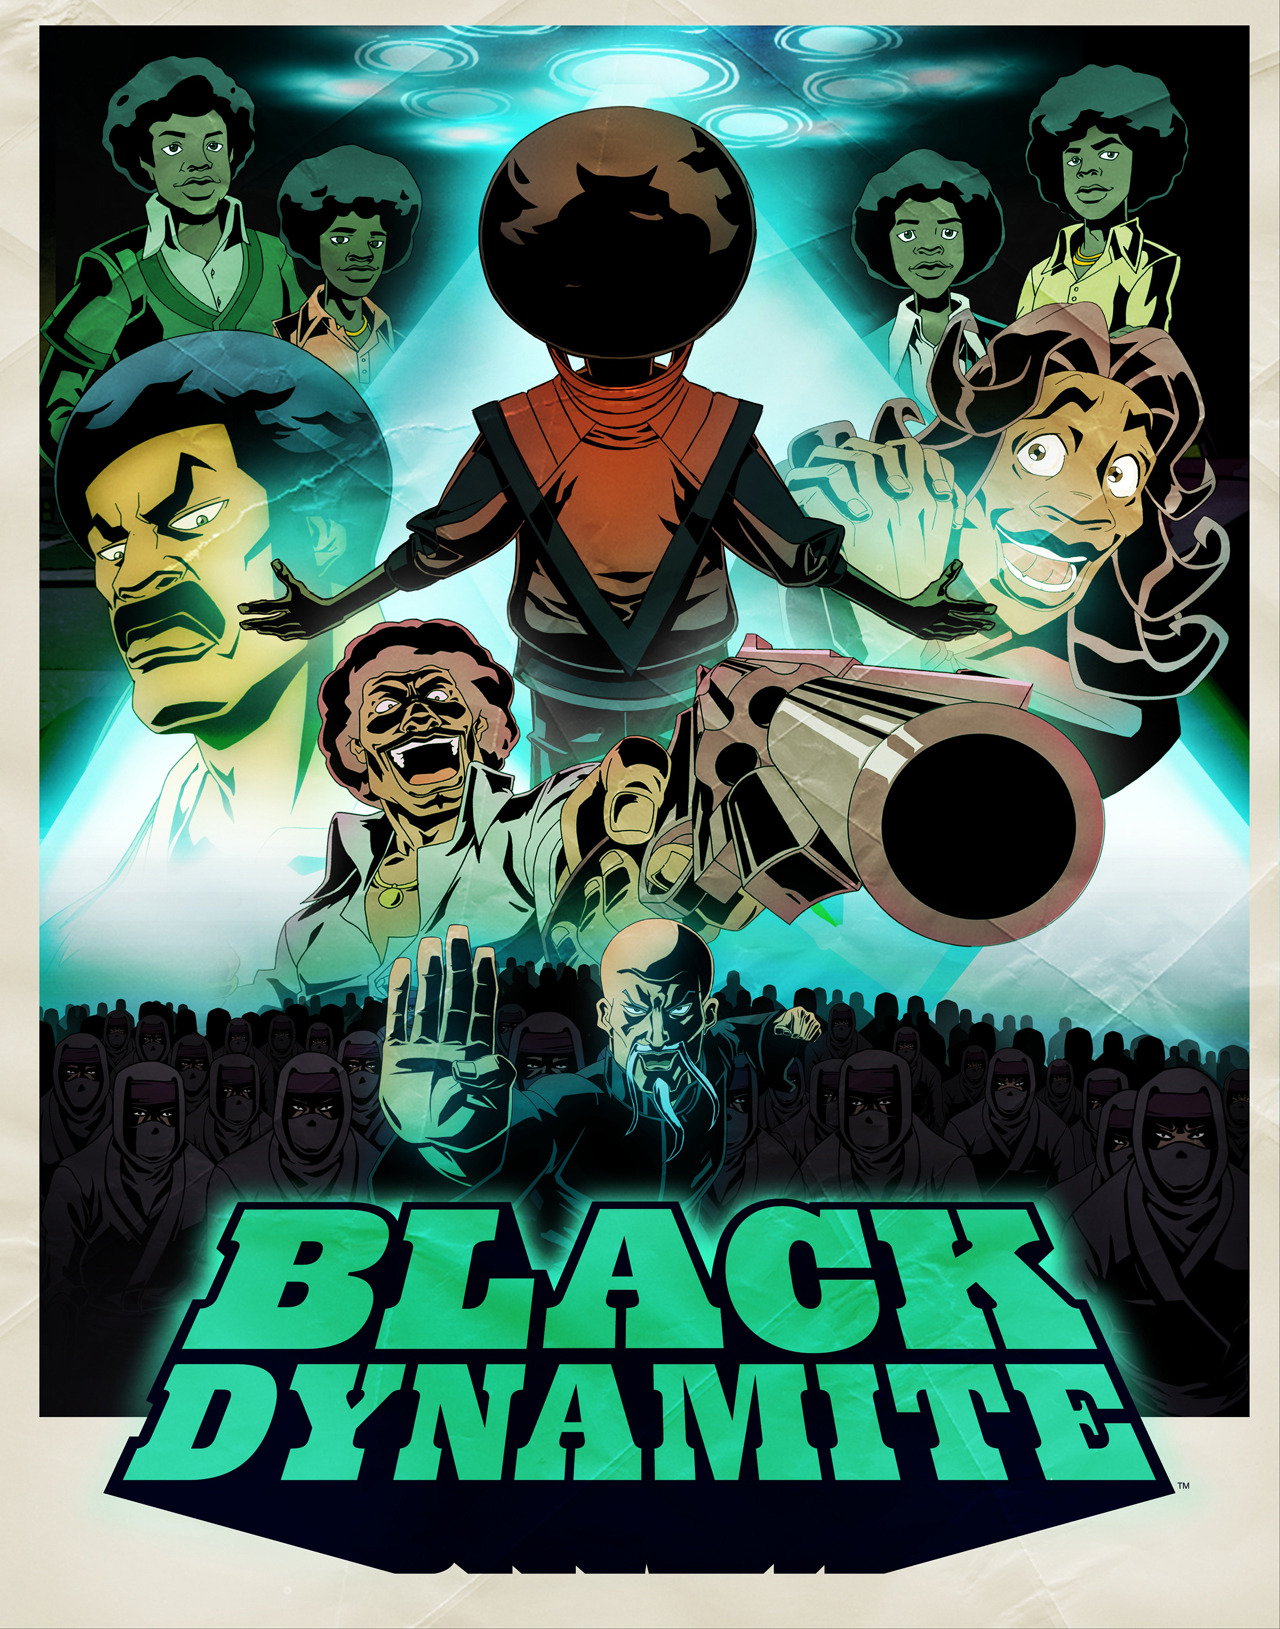 The series premiere of Black Dynamite is finally here! Watch with the world as BD takes on the King of Pop. TONIGHT at 11:30pm on Adult Swim.